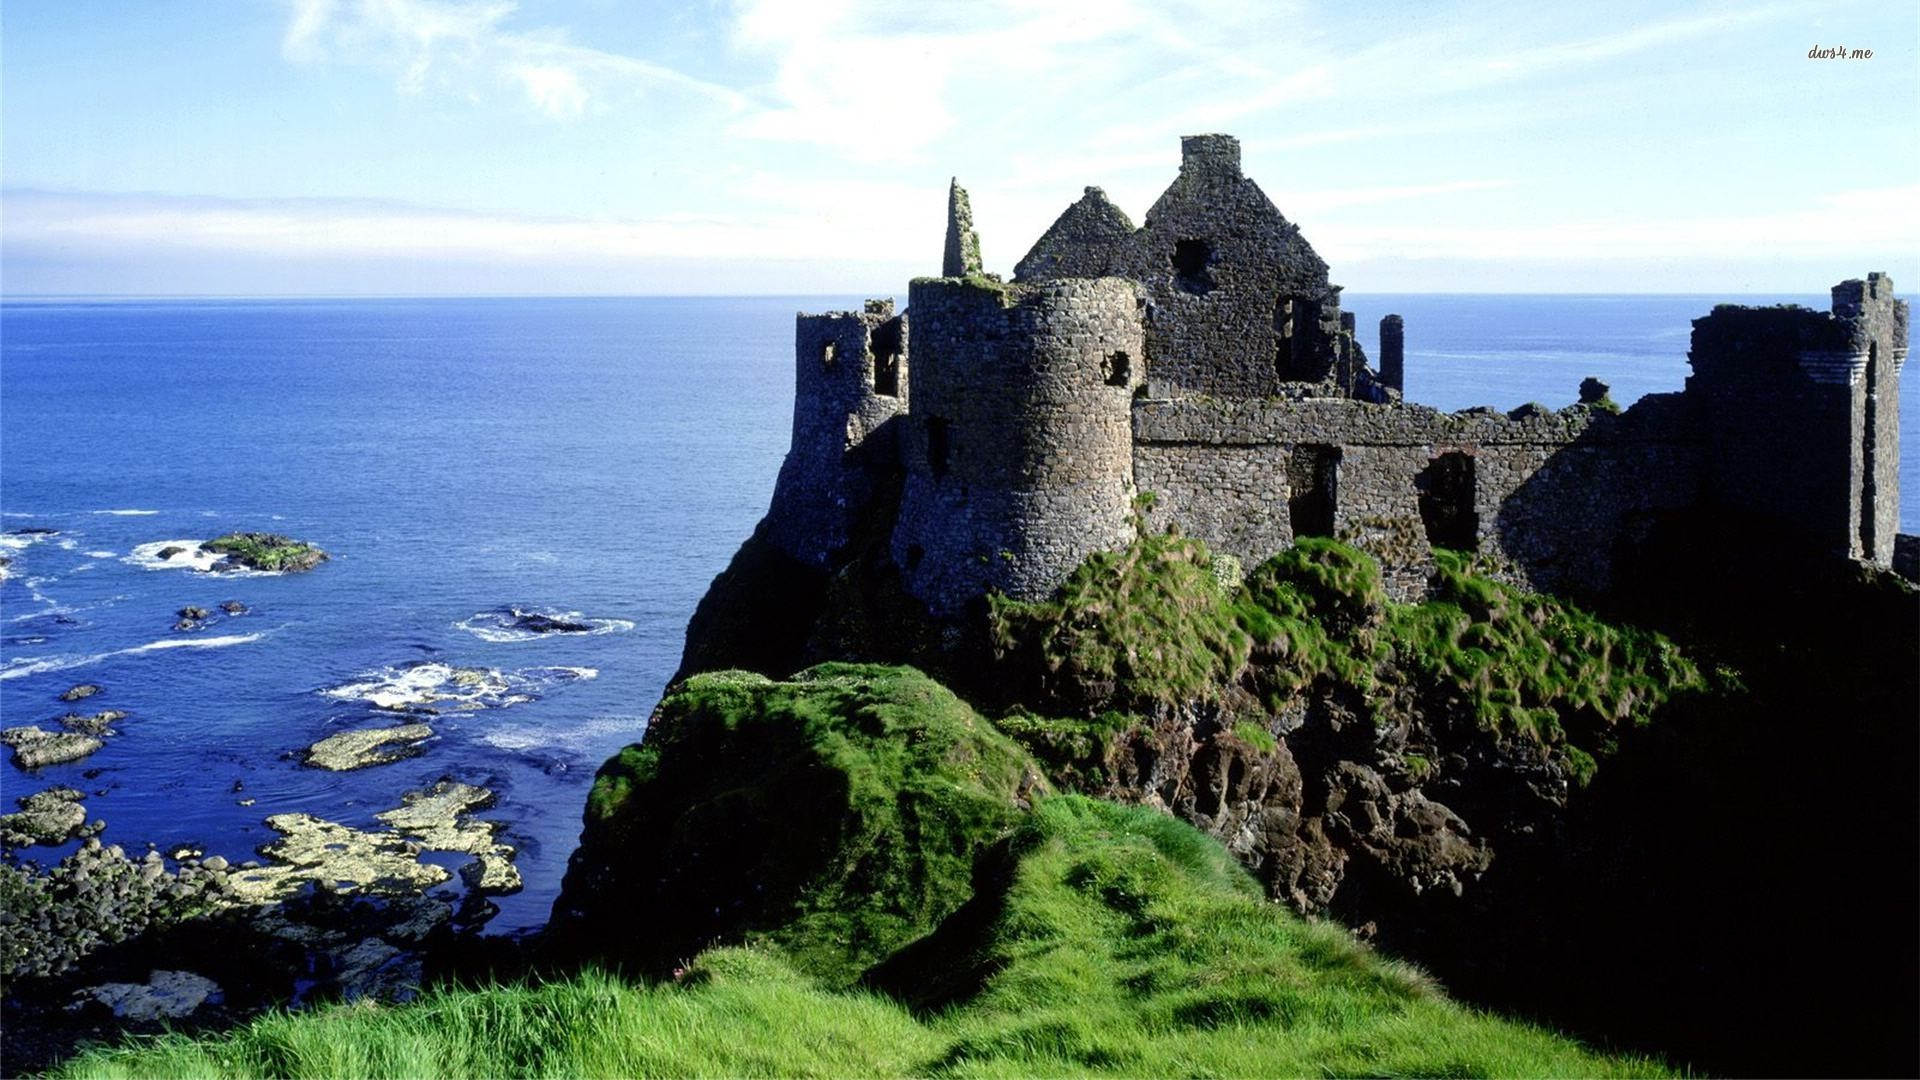 Dunluce Castle, Ireland wallpaper 1280x800 Dunluce Castle, Ireland